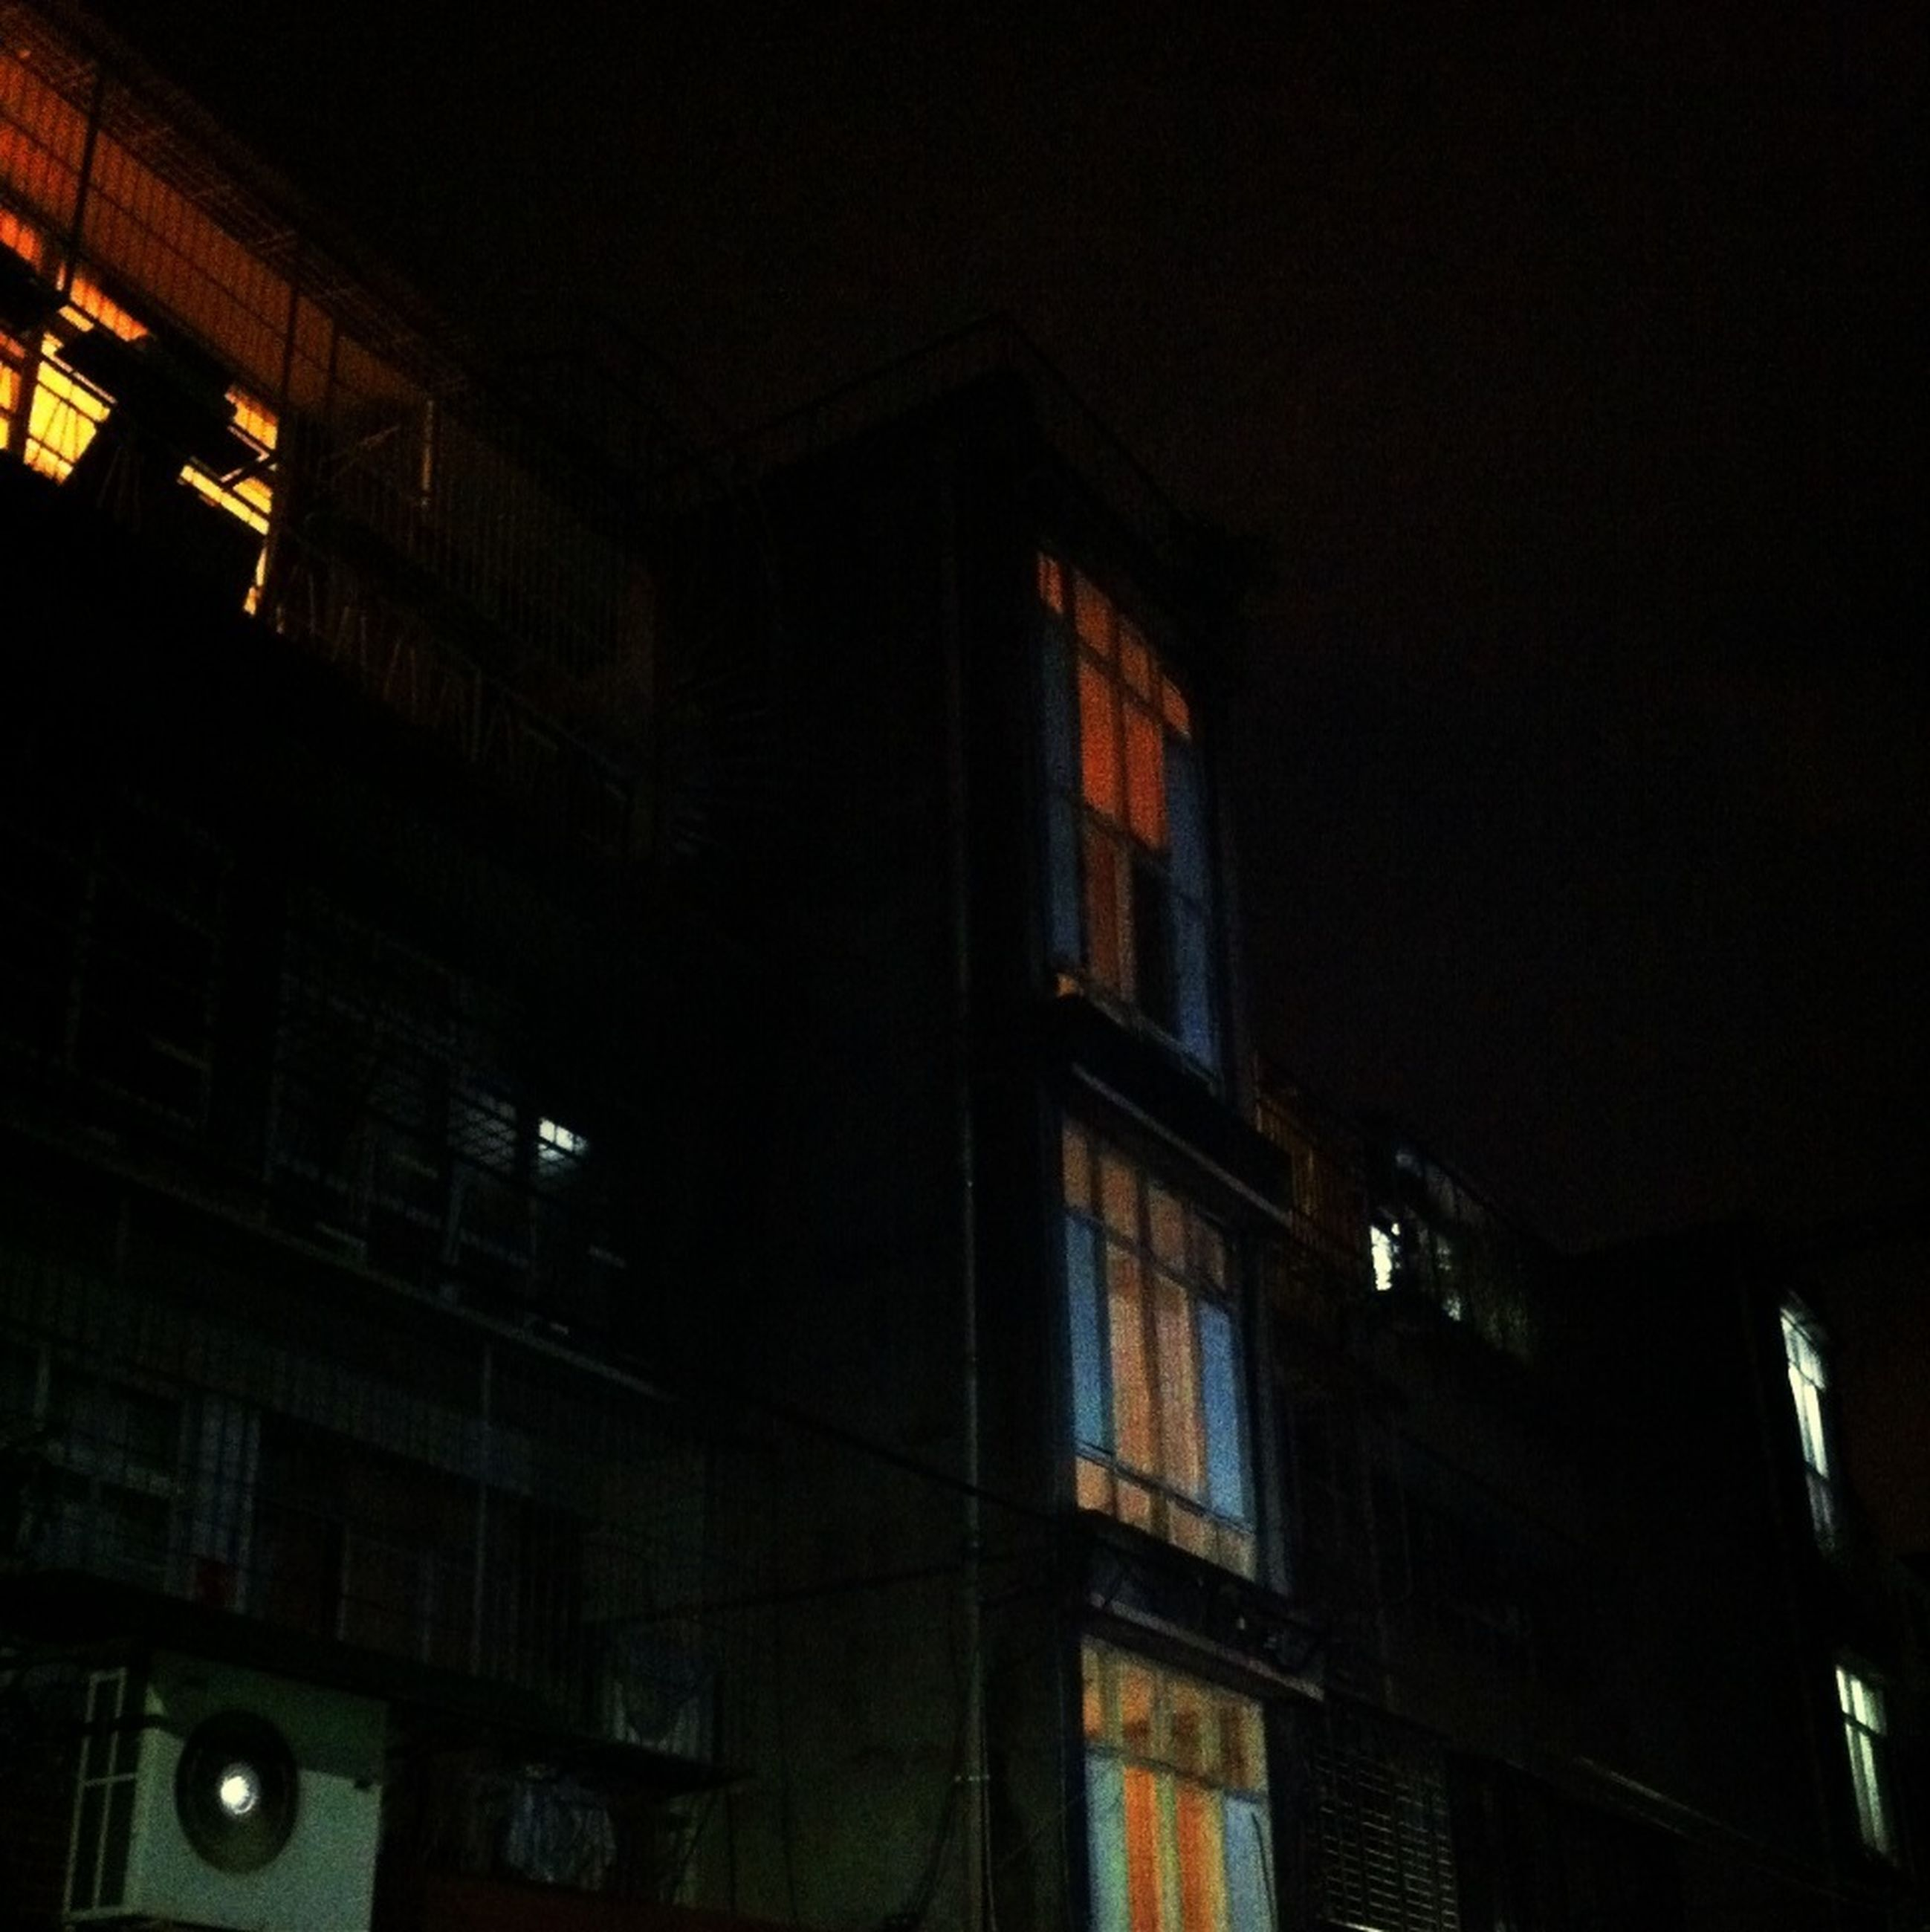 architecture, built structure, building exterior, night, illuminated, low angle view, window, building, city, residential building, dark, residential structure, no people, lighting equipment, exterior, outdoors, house, sky, modern, facade